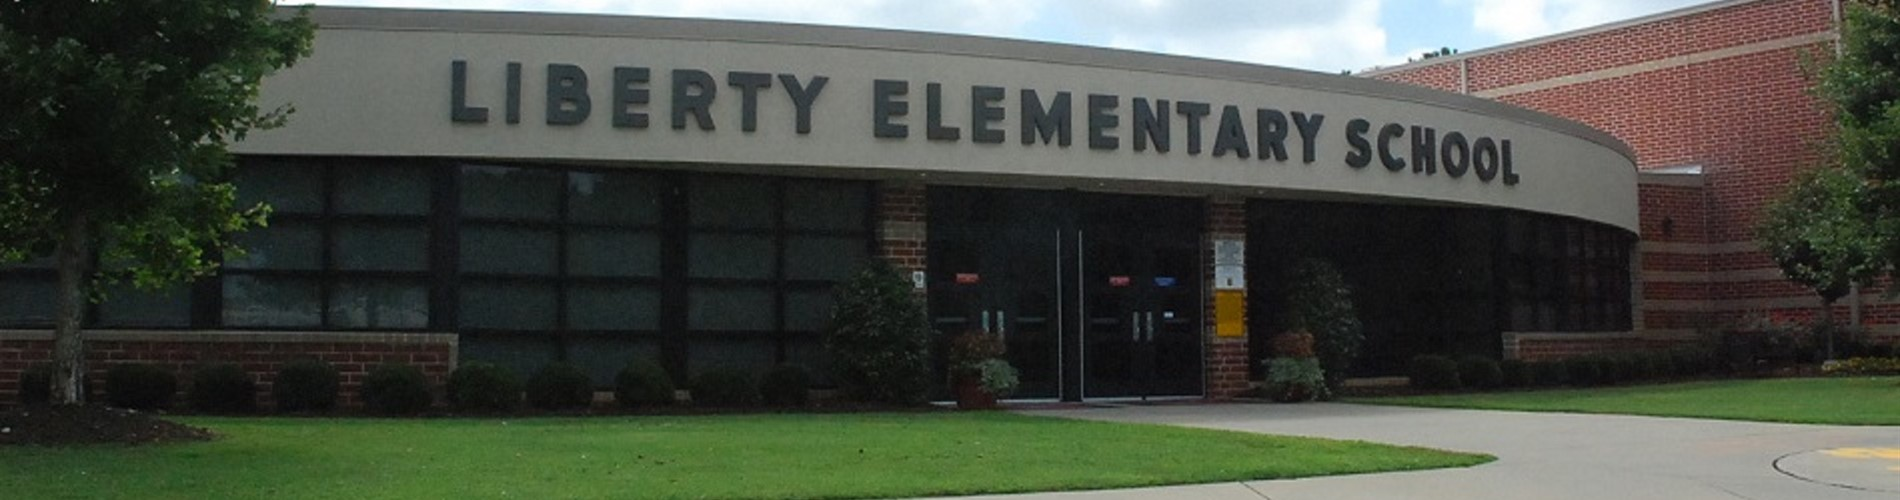 Front Entrance of Liberty Elementary